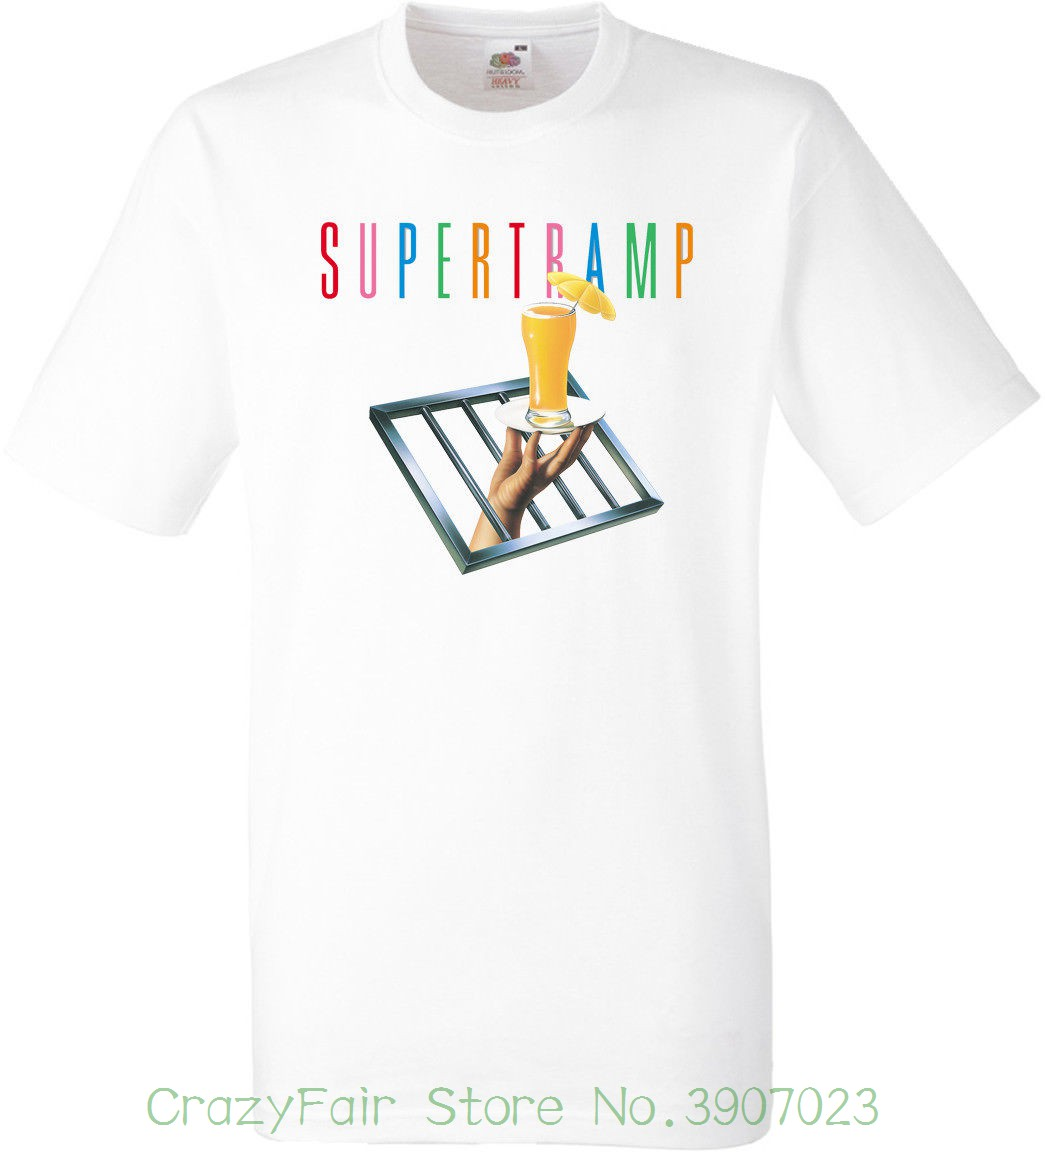 Supertramp White T Shirt Sublimation Summer Short Sleeves Fashion T Shirt Free Shipping